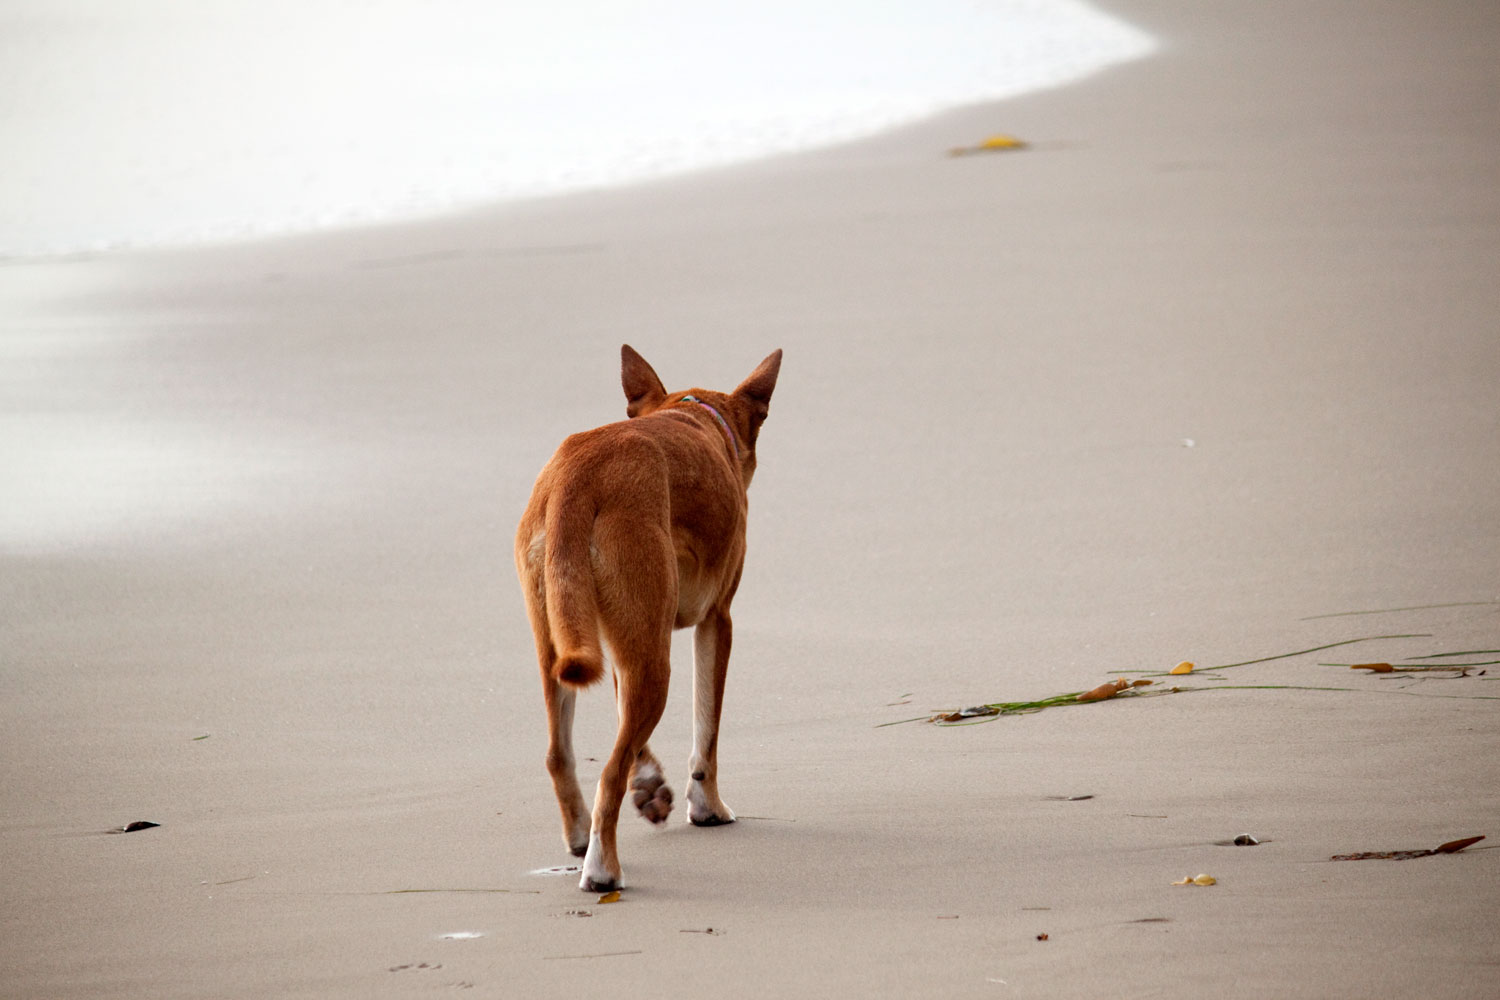 Zoe 'n Me {a dog blog} Thirty fearless pounds | Jordan benShea | Santa Barbara, California